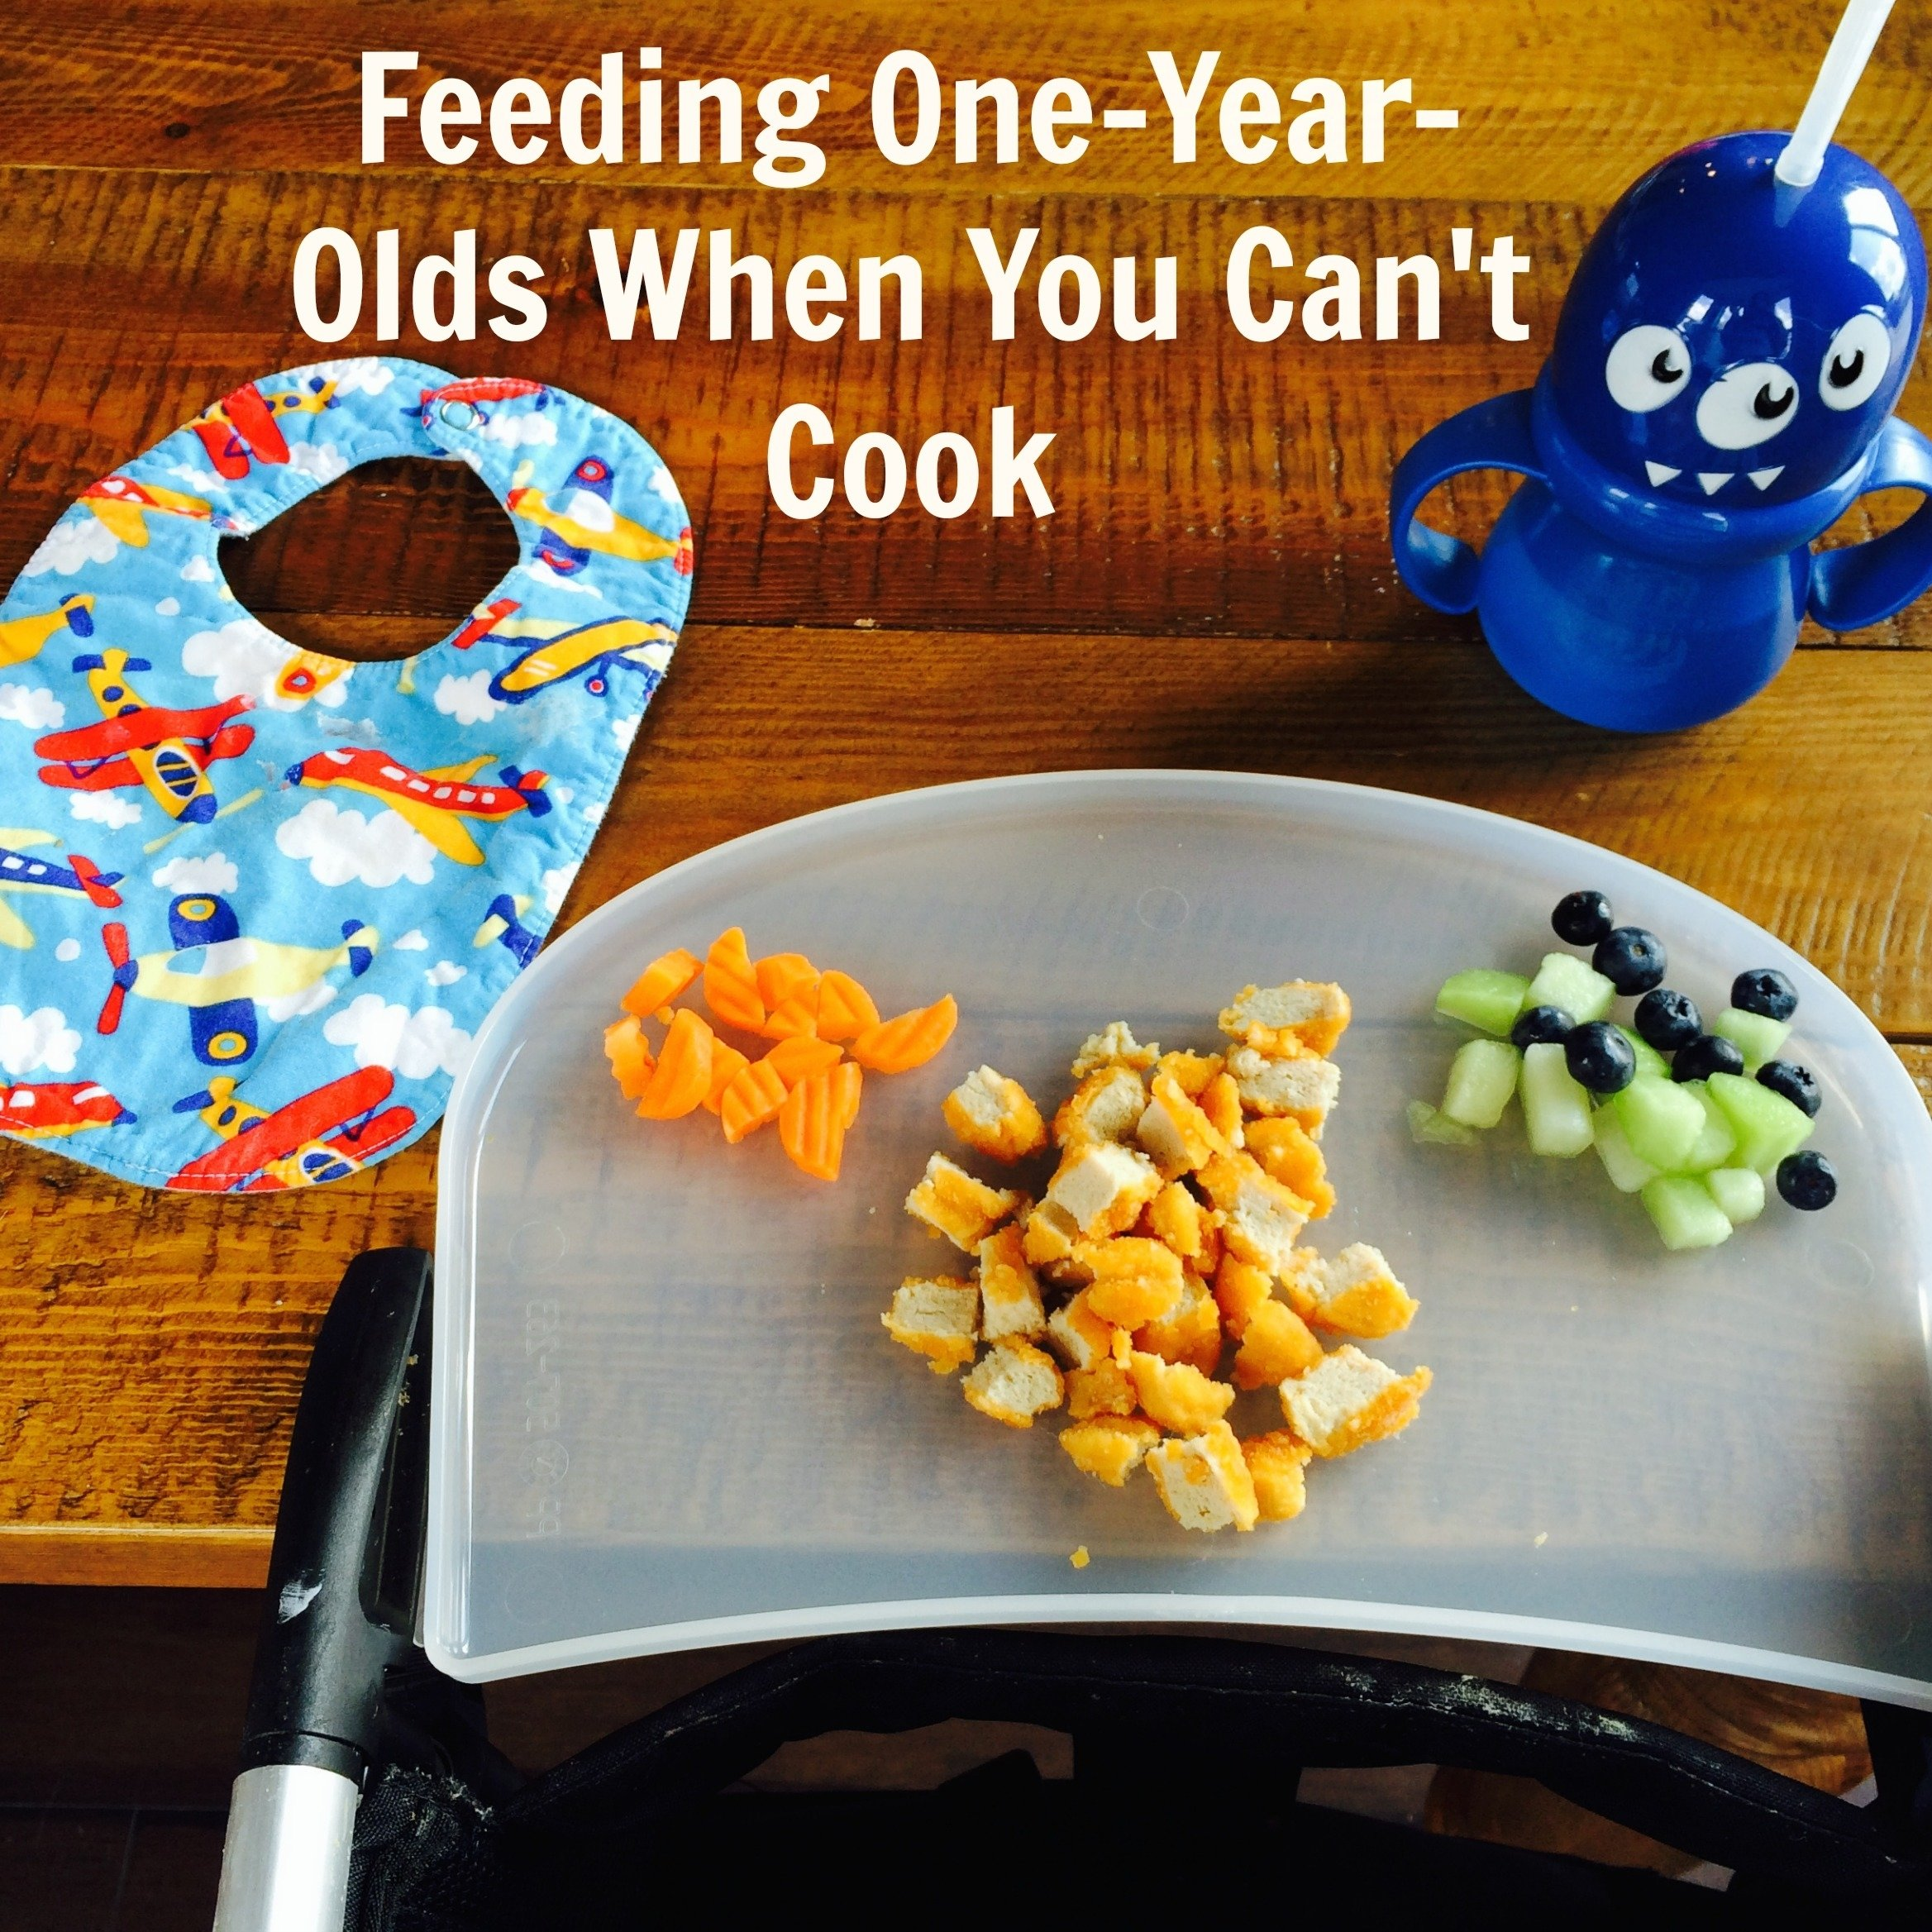 10 Unique Food Ideas For One Year Old feeding one year olds 3